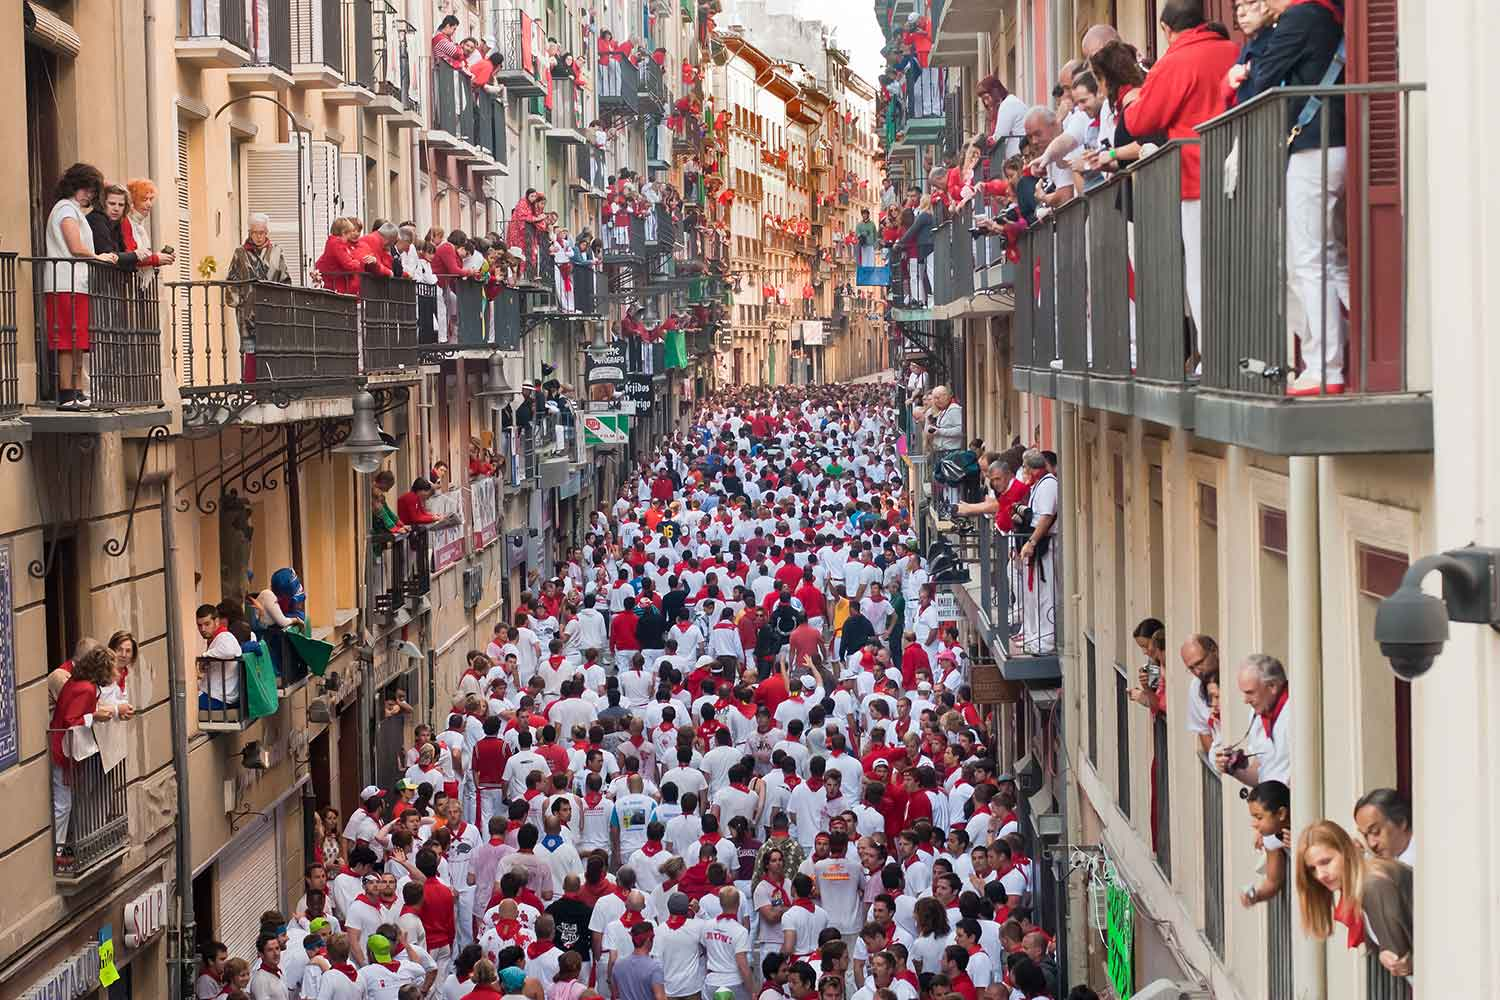 df6261a393 The Basque Country  15 interesting things to know - Blog - Macs ...